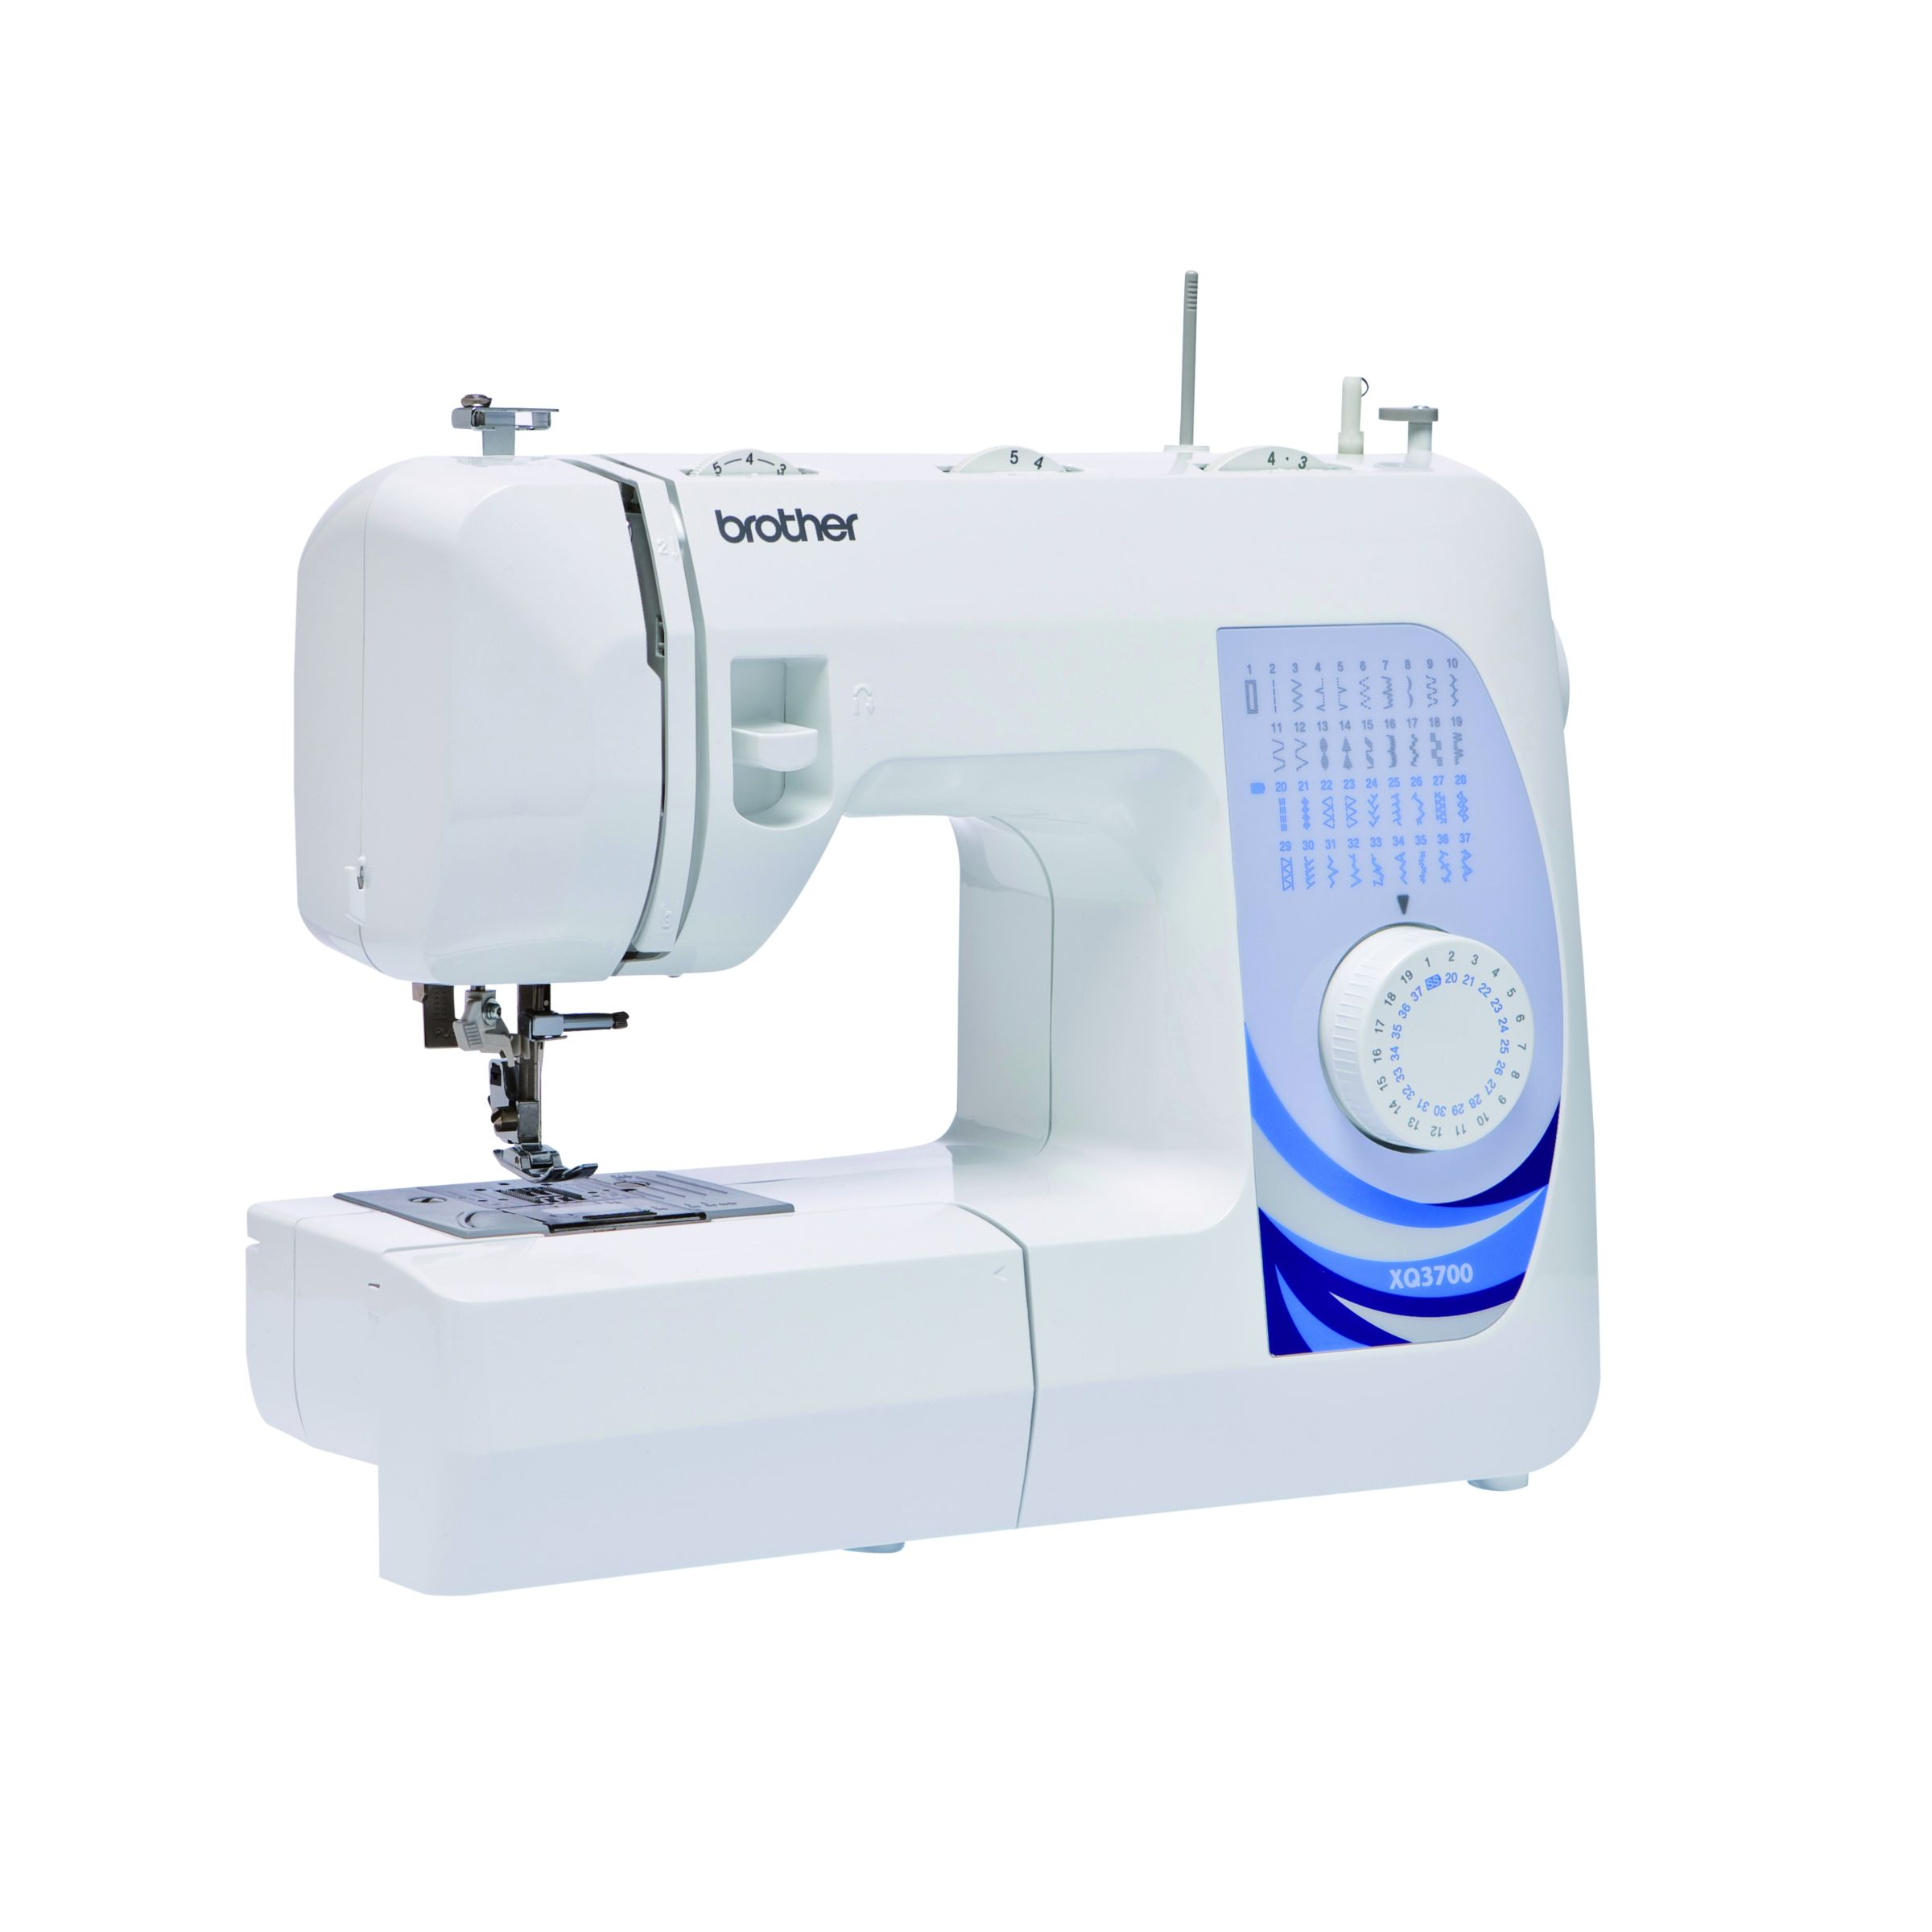 Brother Brother XQ3700 Sewing Machine, White